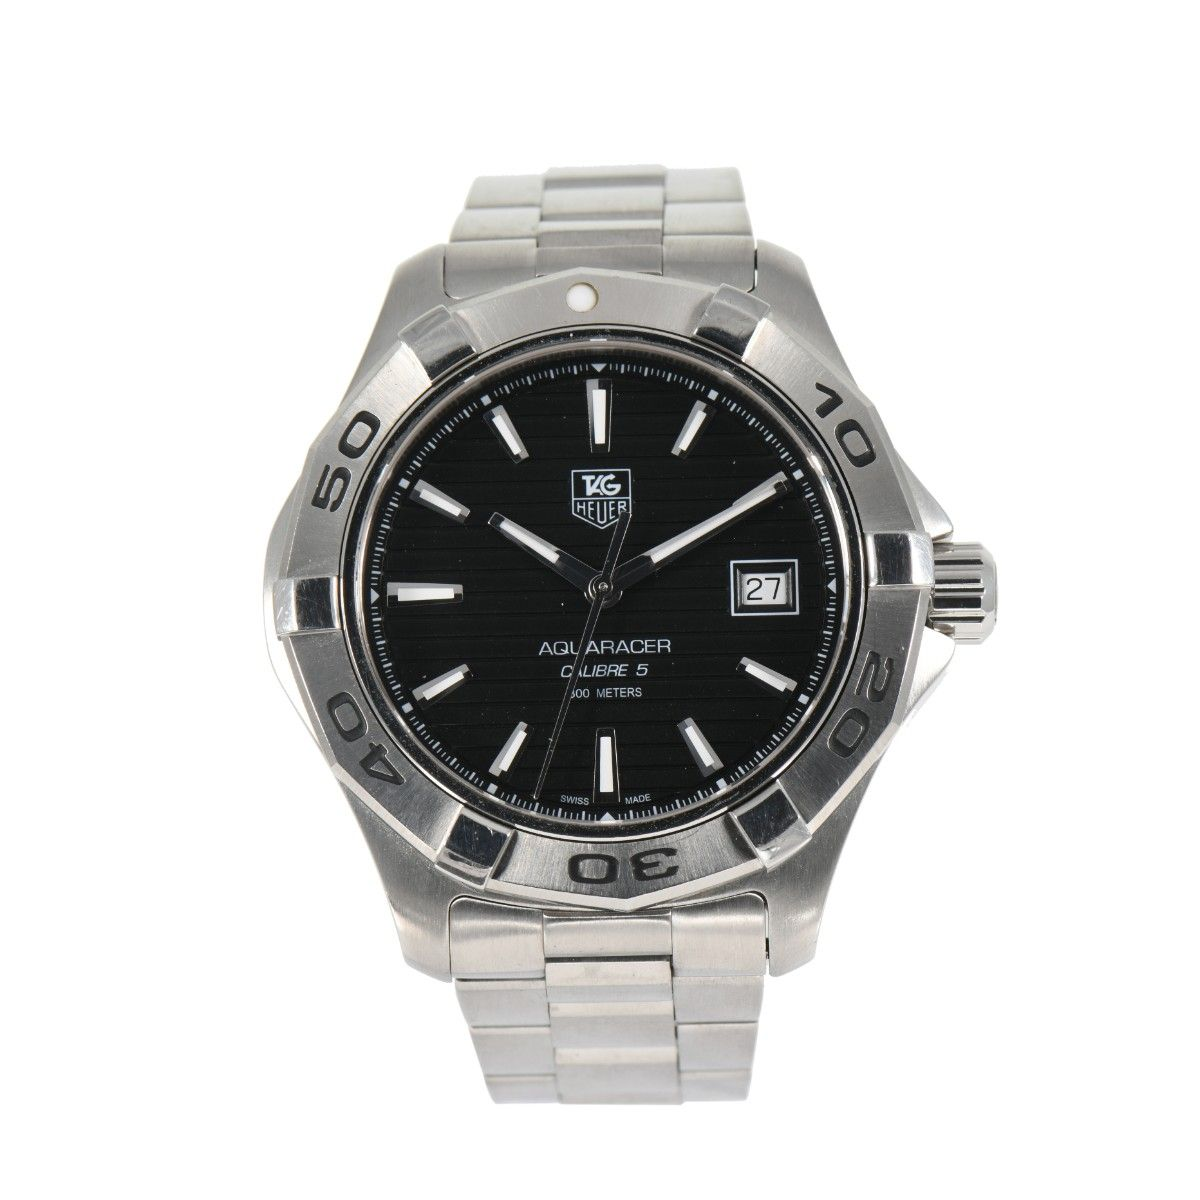 Tag Heuer Aquaracer Automatic WAP2010 Black Dial 41mm Mens Watch